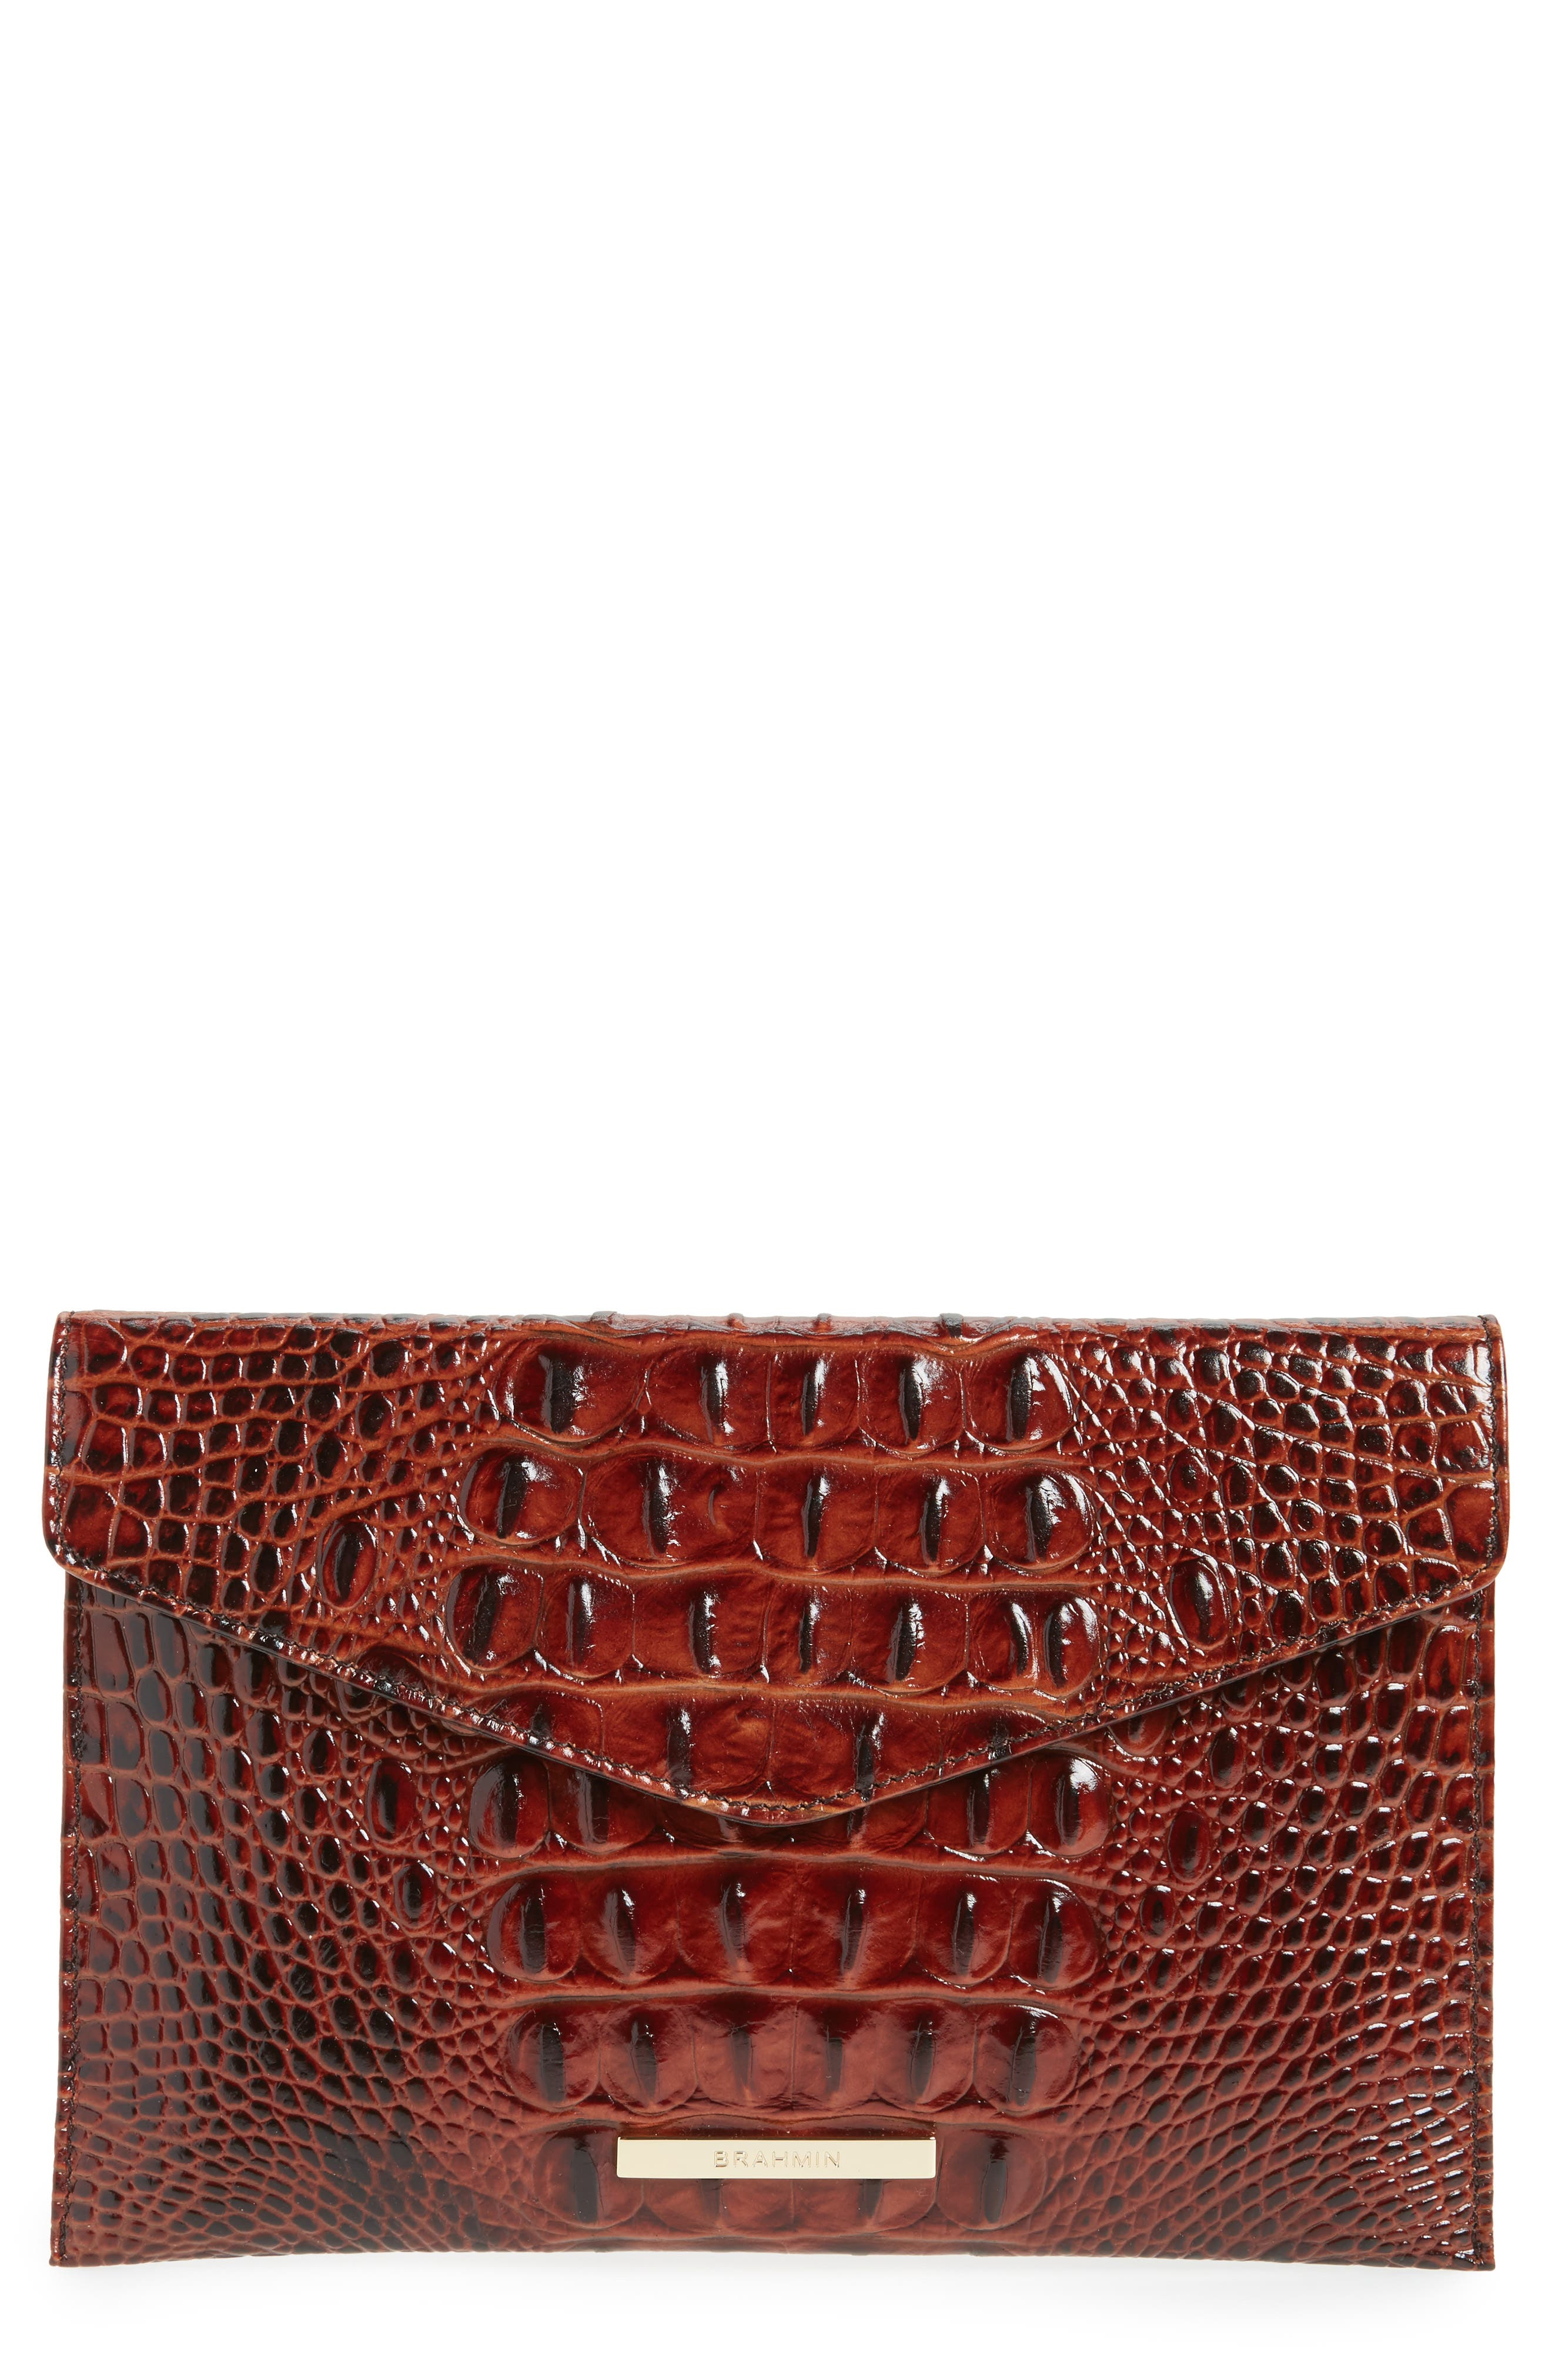 Alternate Image 1 Selected - Brahmin Melbourne Croc Embossed Leather Envelope Clutch